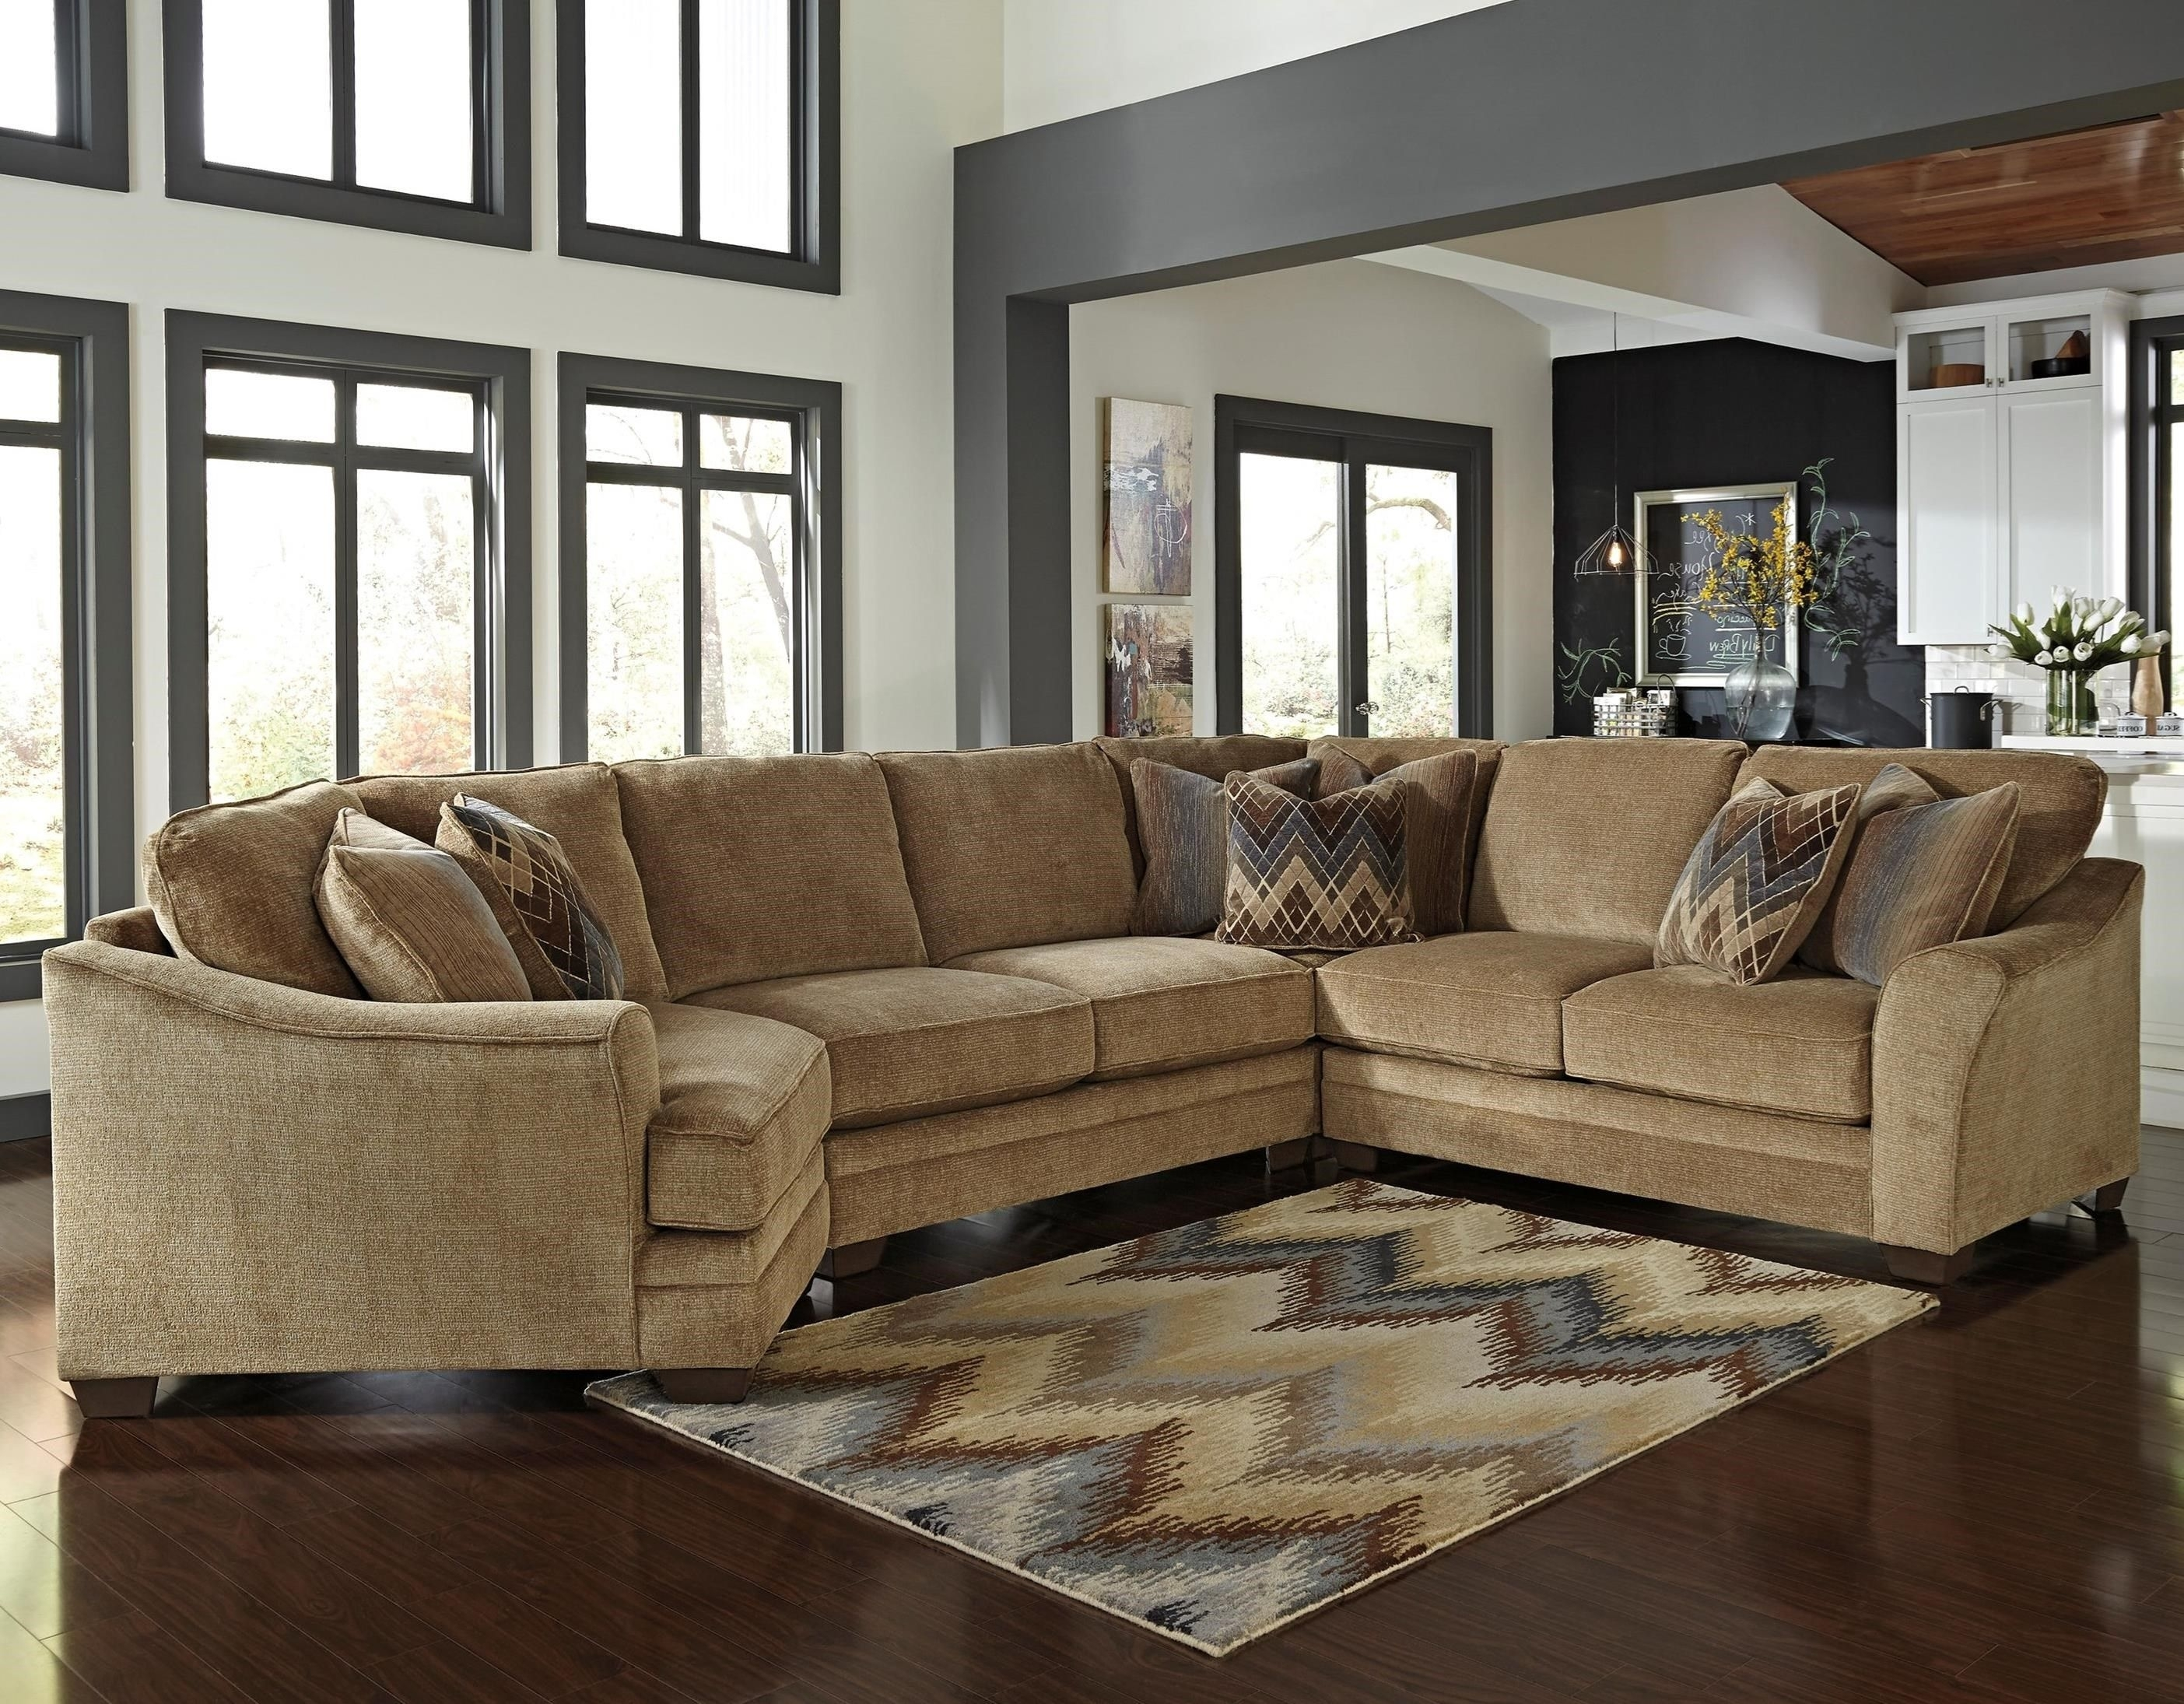 Pintammy Walter On Farmhouse Style | Pinterest | Farmhouse Style For Norfolk Chocolate 3 Piece Sectionals With Laf Chaise (View 20 of 25)